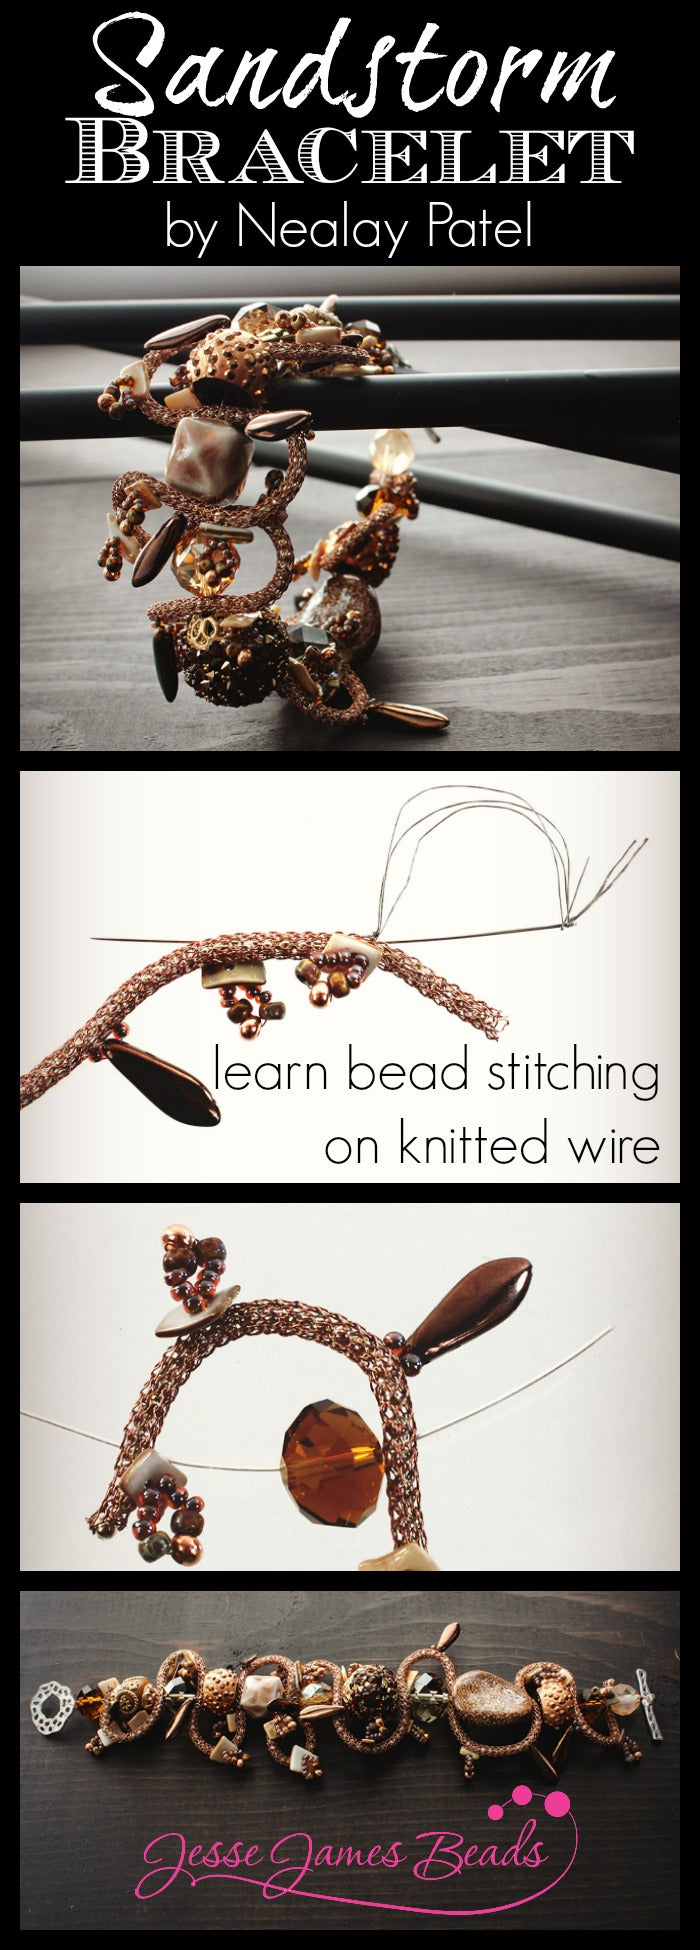 DIY Jewelry Making How to stitch beads on knitted wire by Nealay Patel for Jesse James Beads